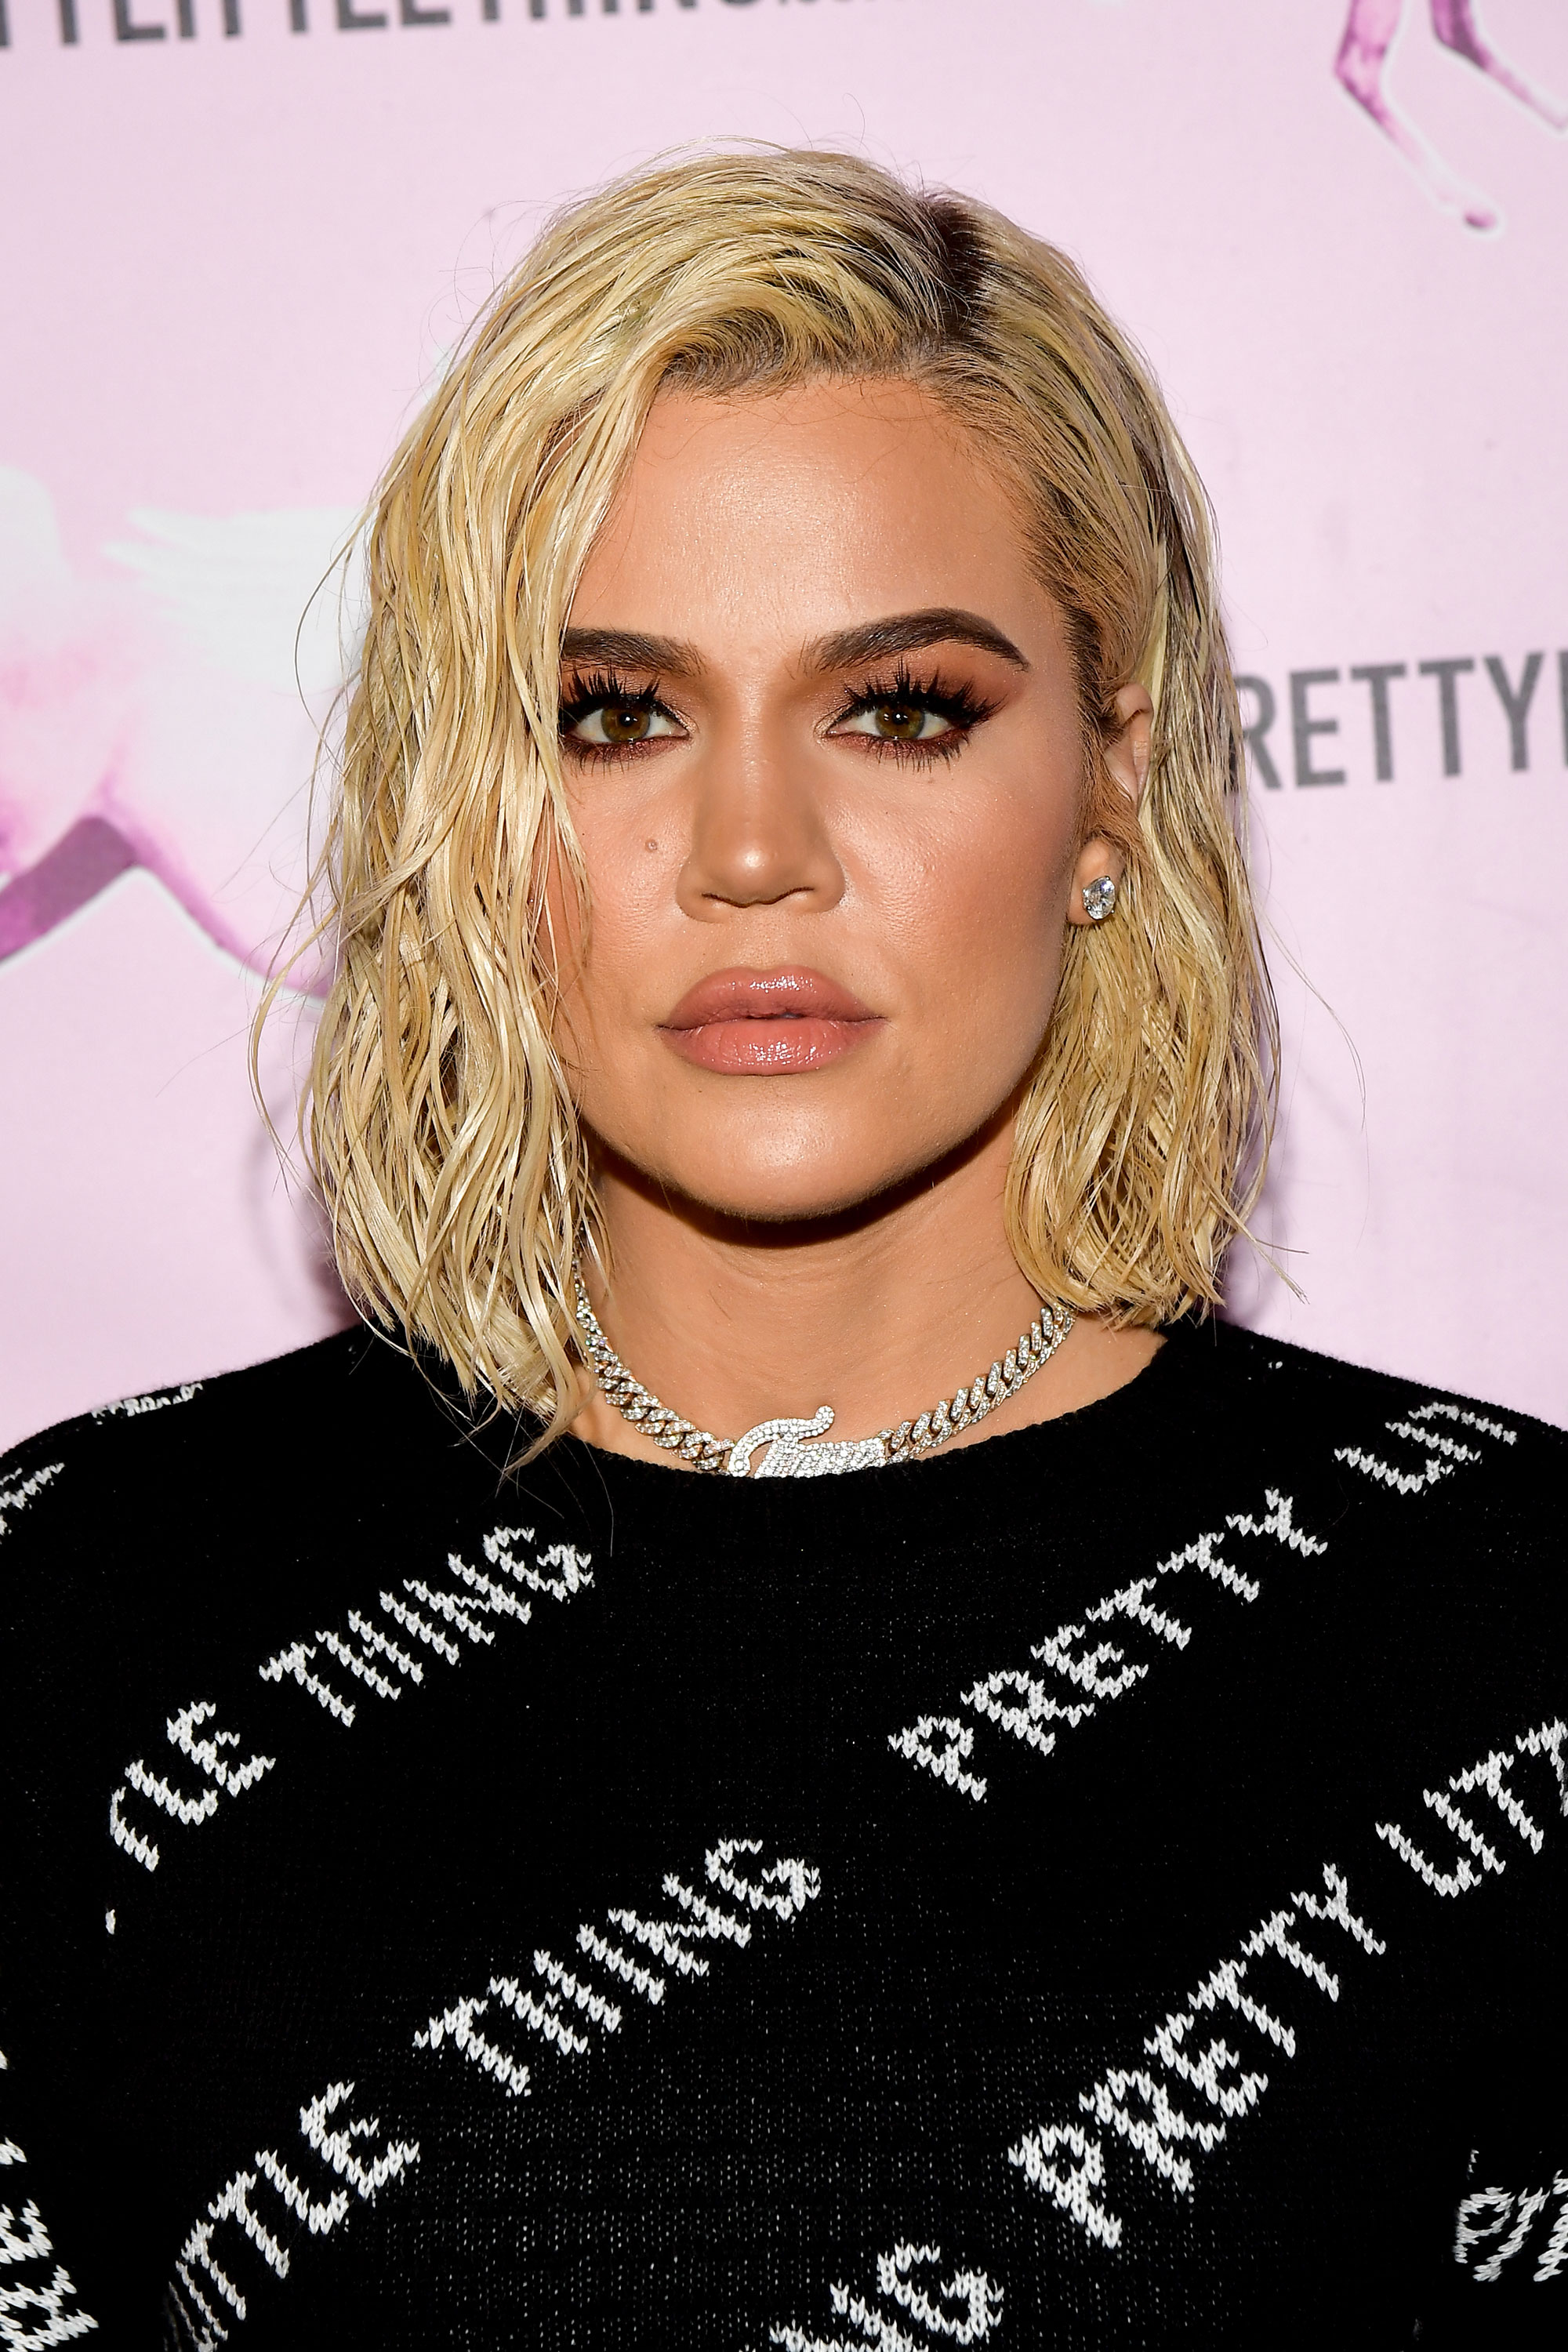 Khloé Kardashian's Hair Change Was Inspired by Her Spray Tan